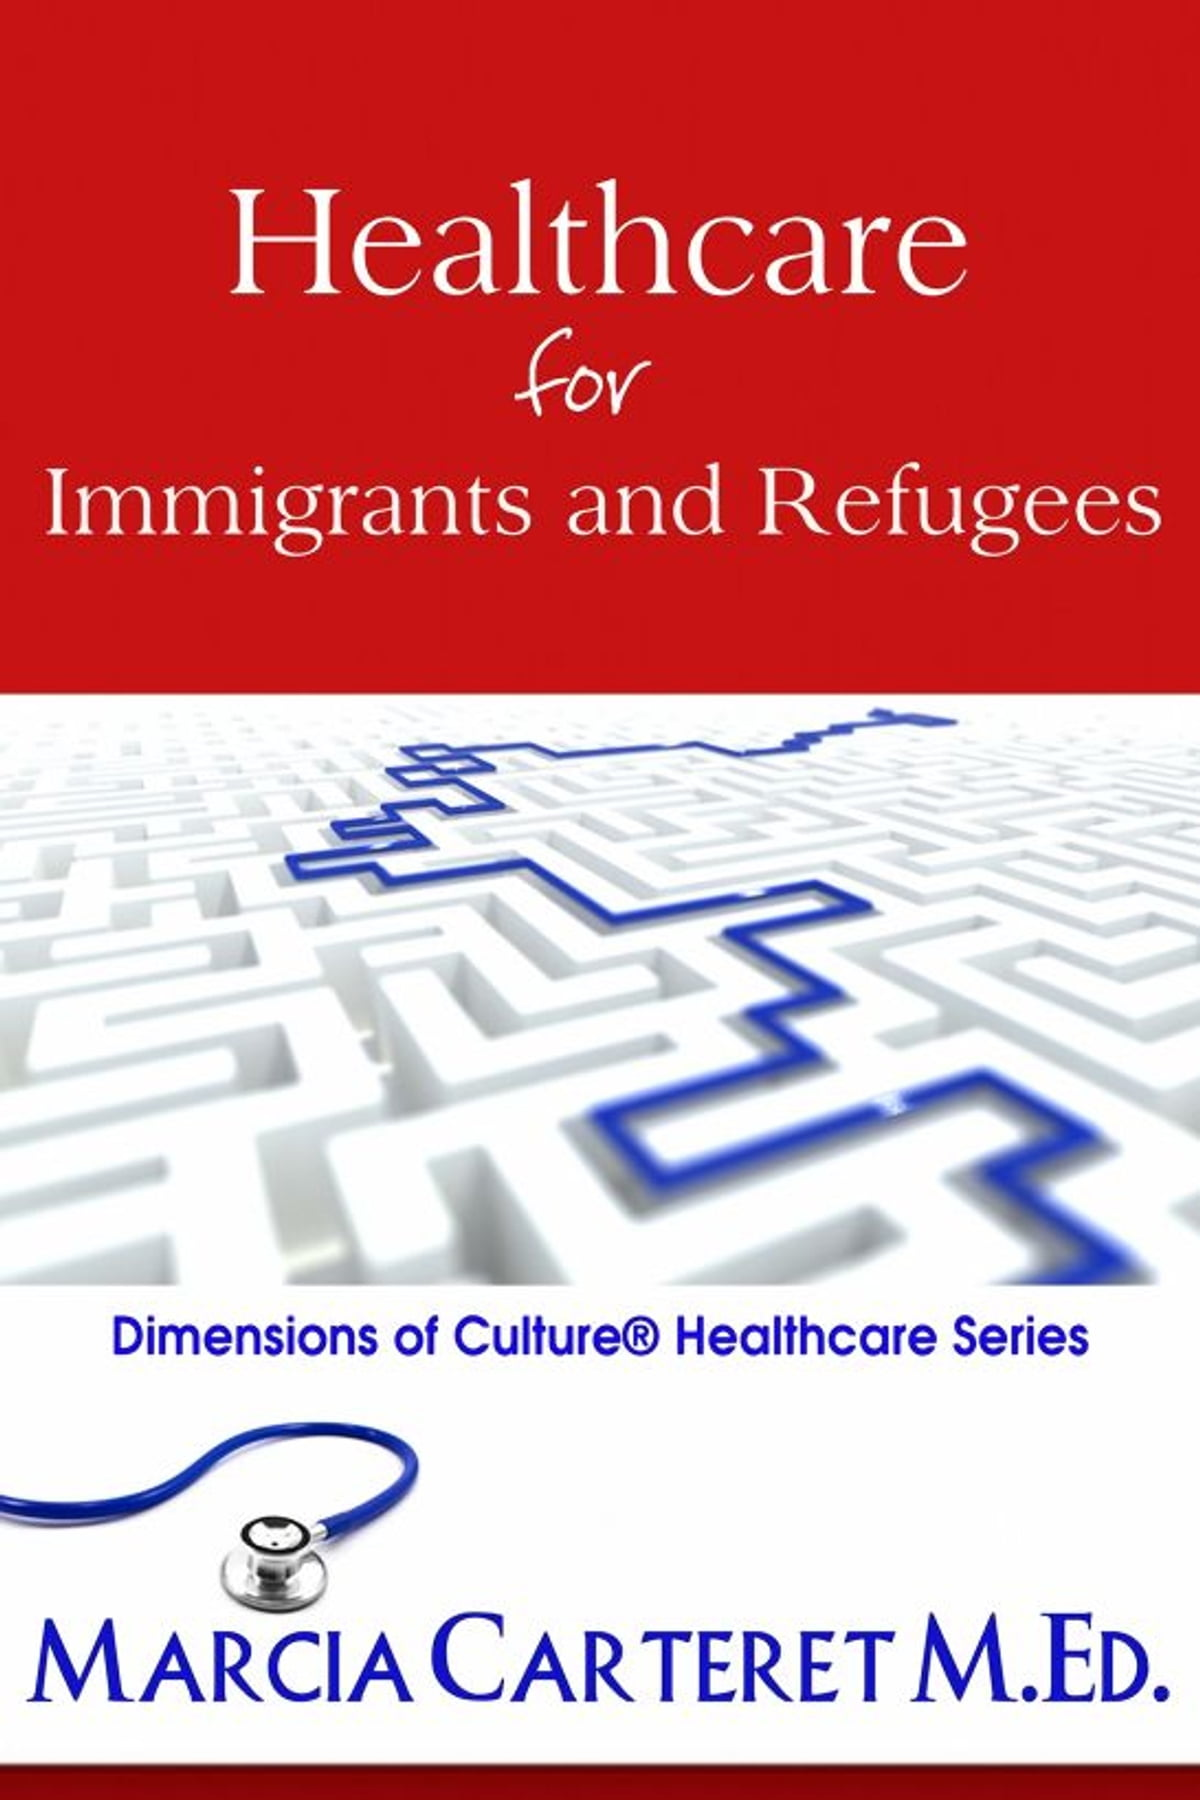 Healthcare For Immigrants And Refugees Ebook By Marcia Carteret   9781301377626  Rakuten Kobo